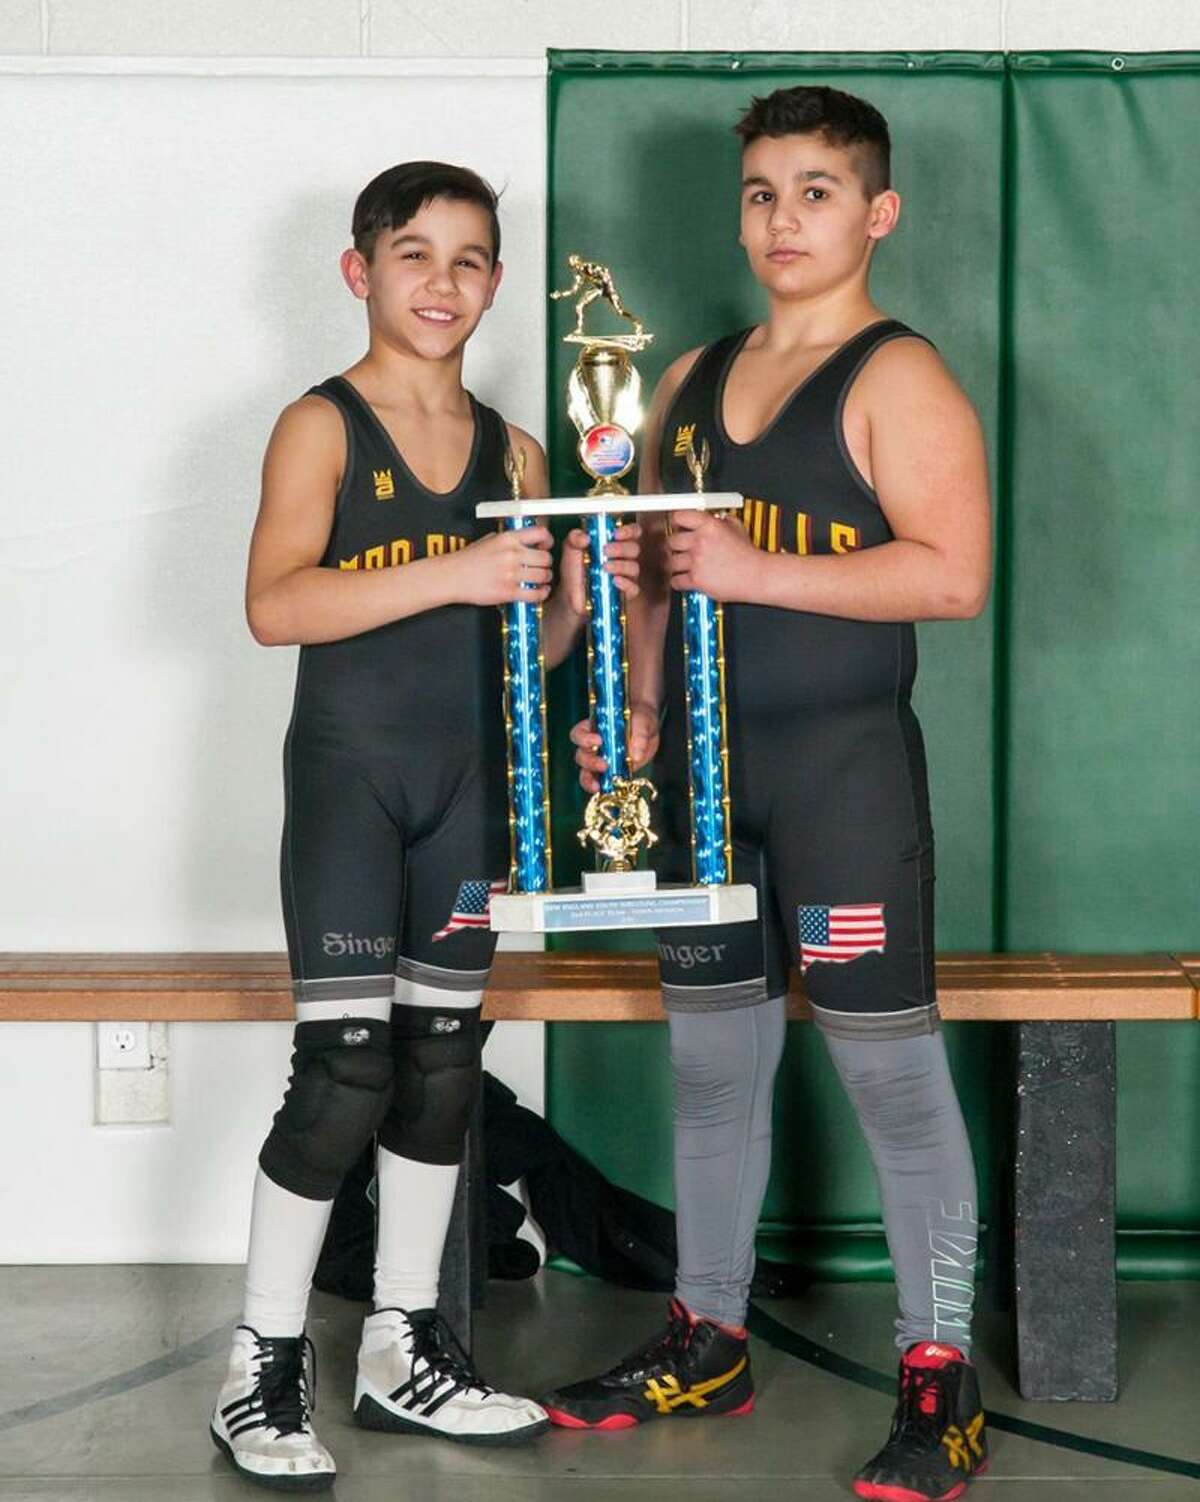 Norwalk Mad Bulls wrestlers, from left, Nicky Singer and Jason Singer, have now won back-to-back New England championships.